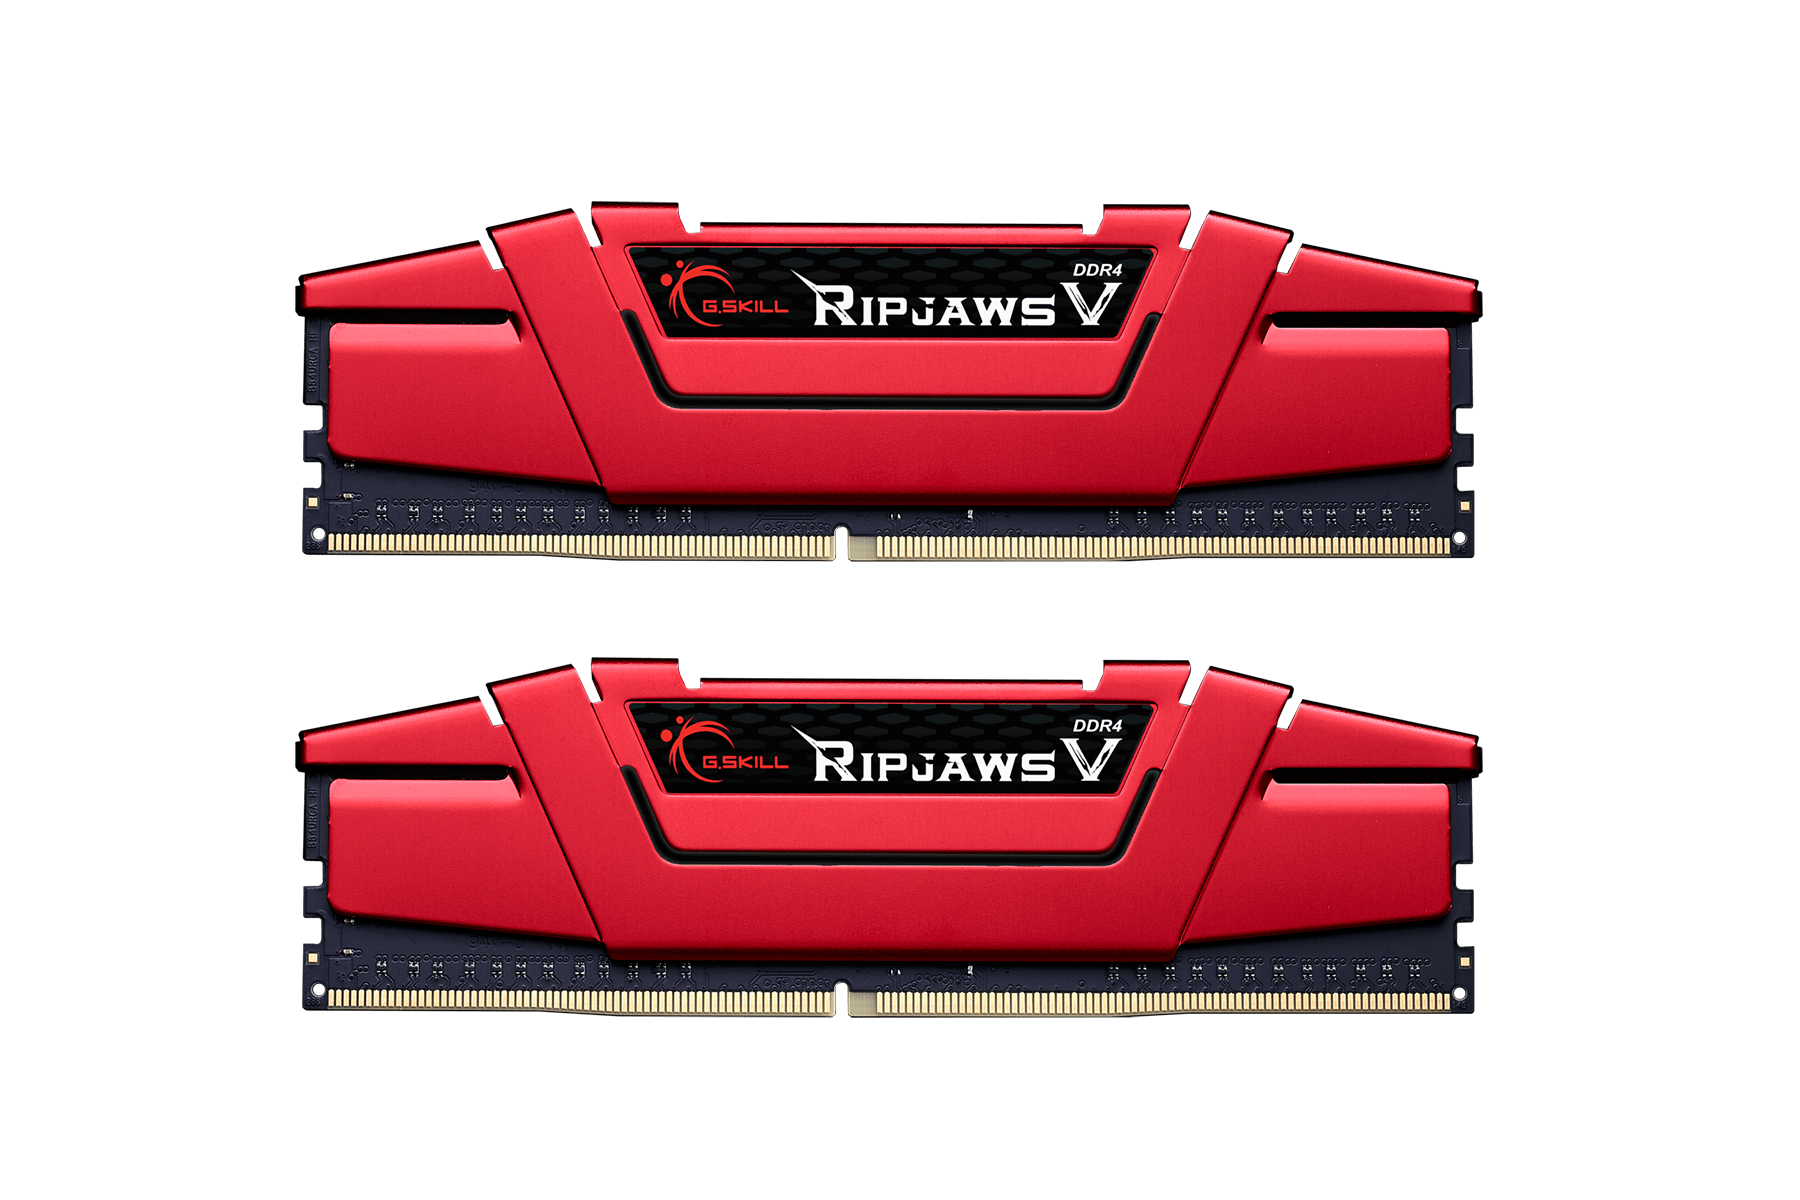 Памет G.SKILL Ripjaws V Red 32GB(2x16GB) DDR4 PC4-25600 3200MHz CL14 F4-3200C14D-32GVR